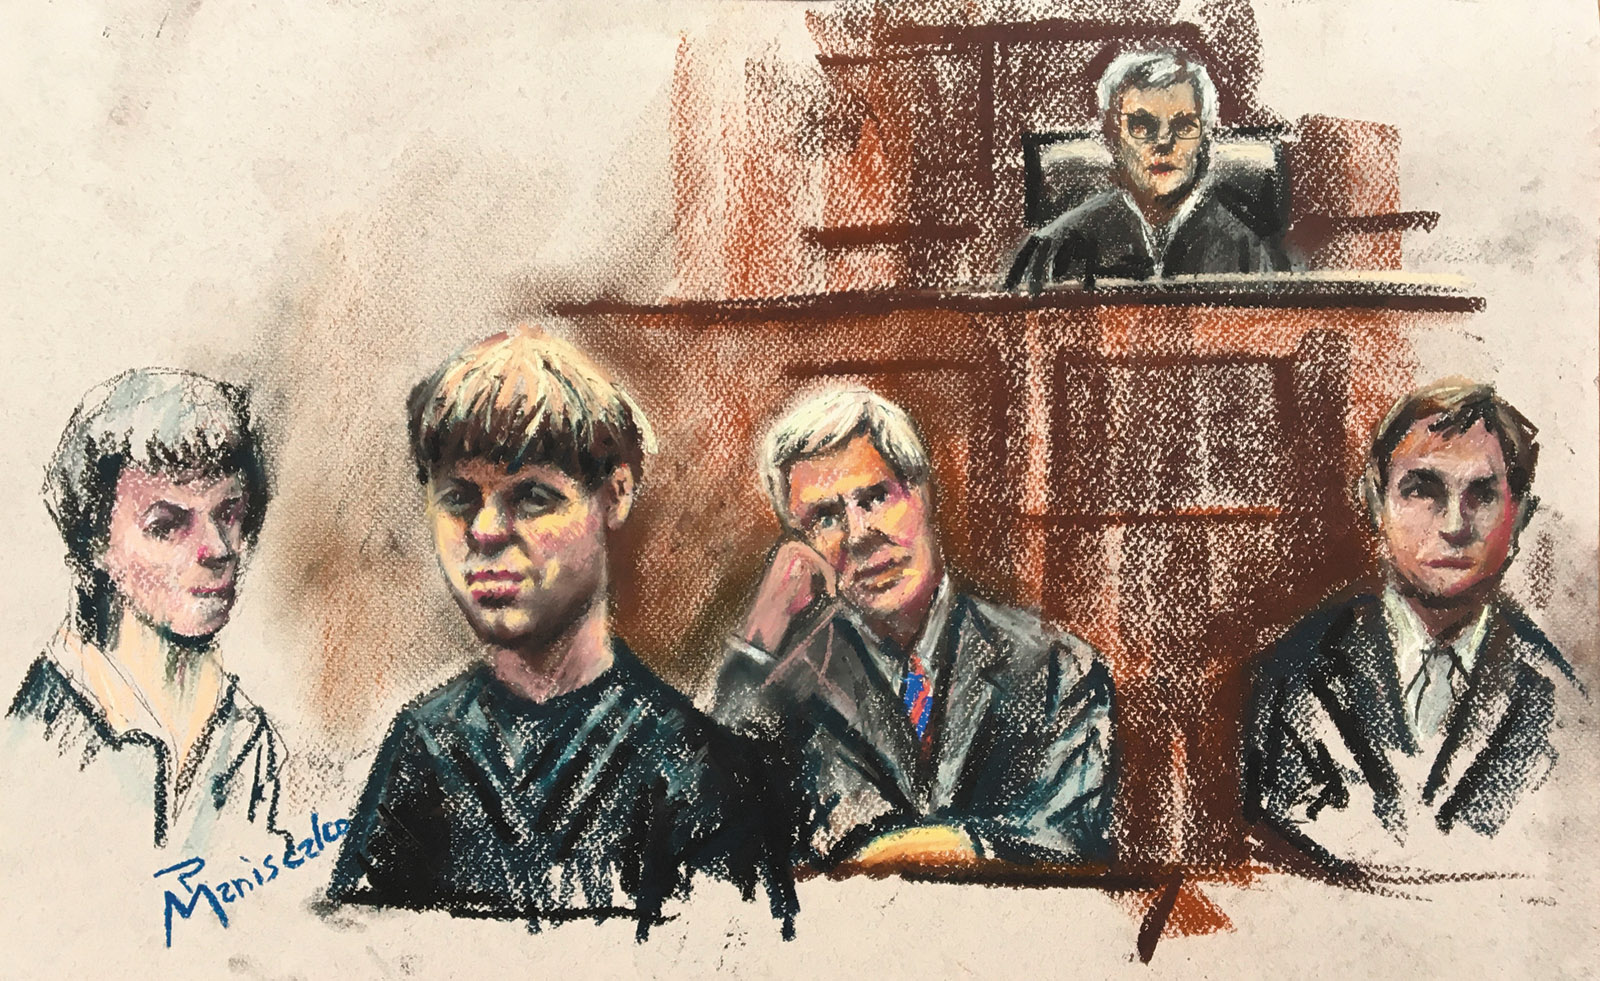 Dylann Roof (second from left) during the initial stage of jury selection for his trial for the murder of nine worshipers at the Emanuel African Methodist Episcopal Church, Charleston, South Carolina, September 2016